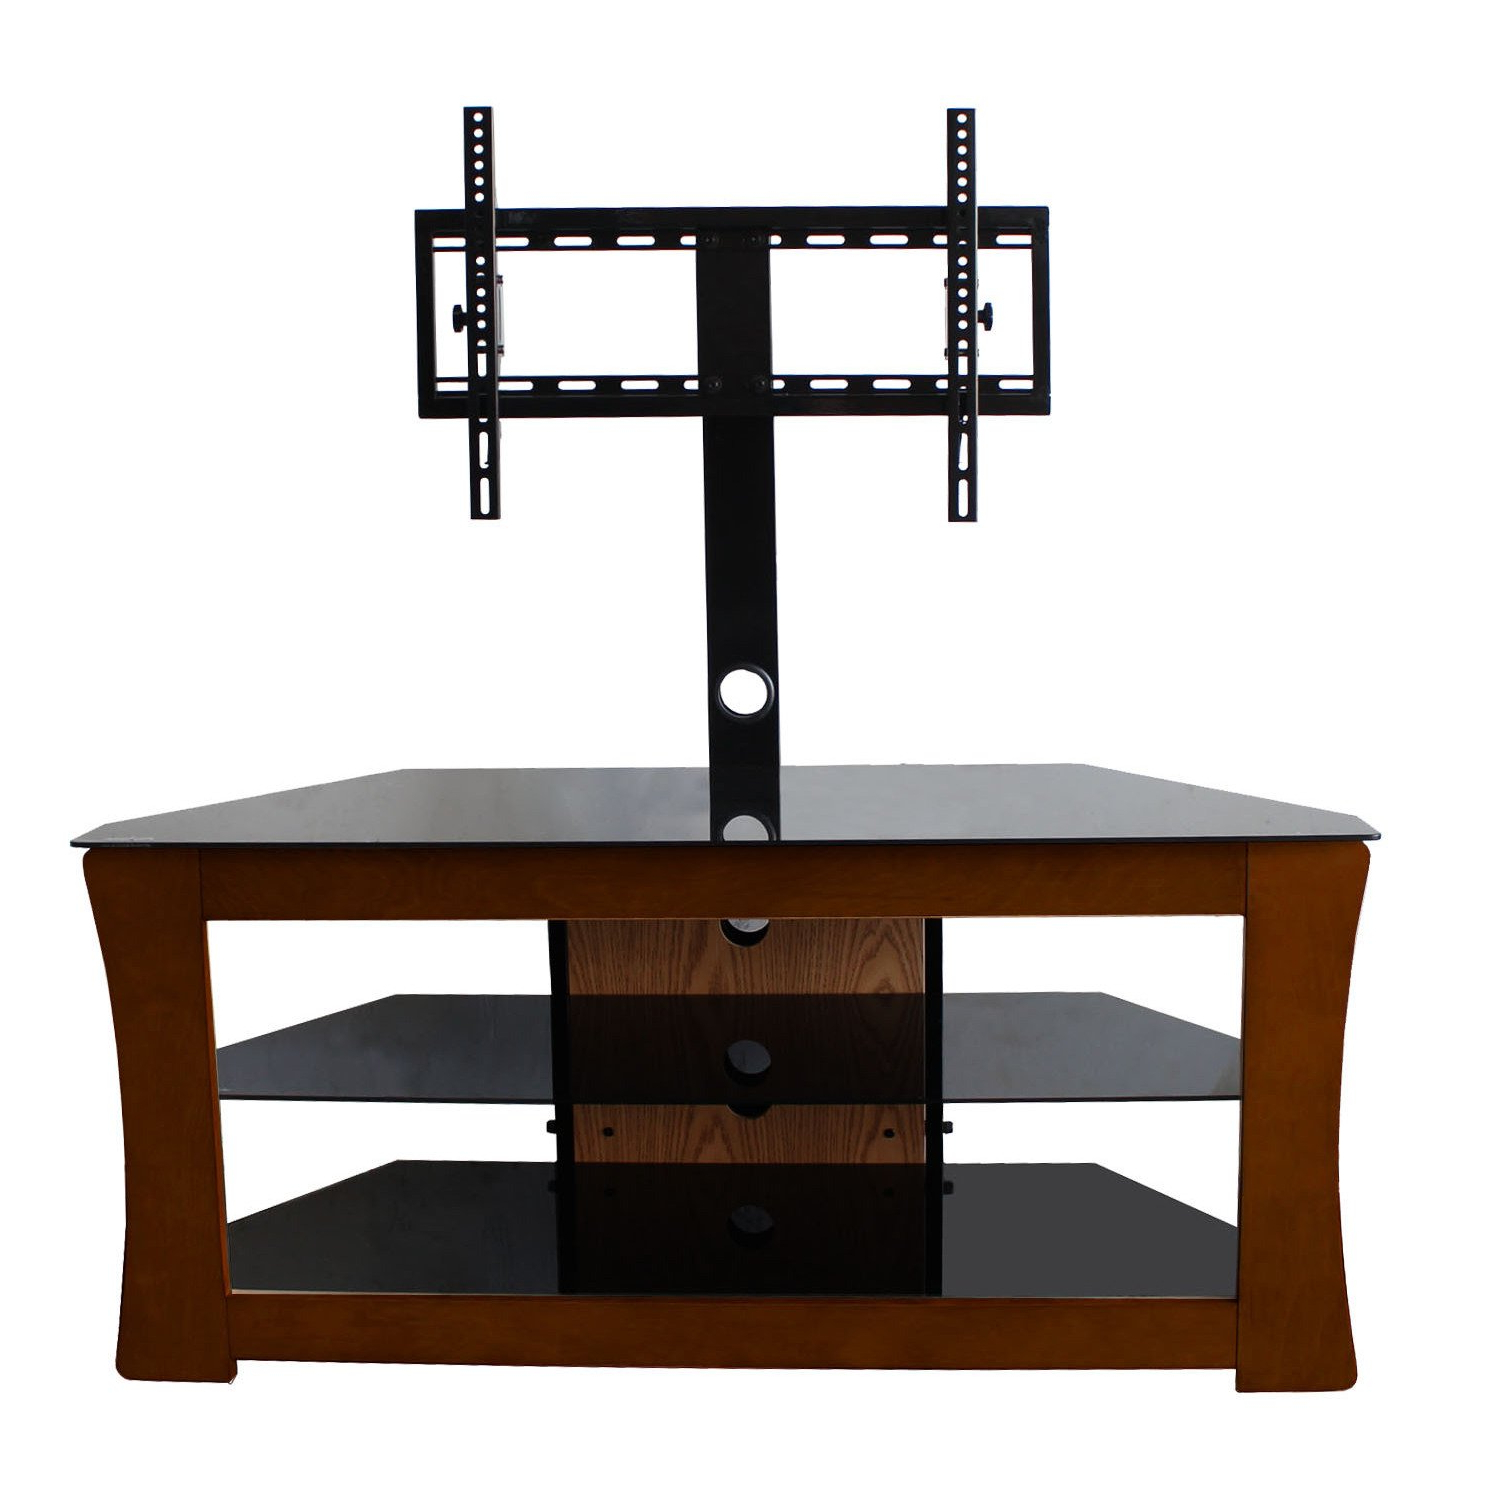 Shop Avista Visto Espresso Tv Stand With Rear Swivel Mount For Up To With Well Liked Tv Stands Swivel Mount (Gallery 19 of 20)